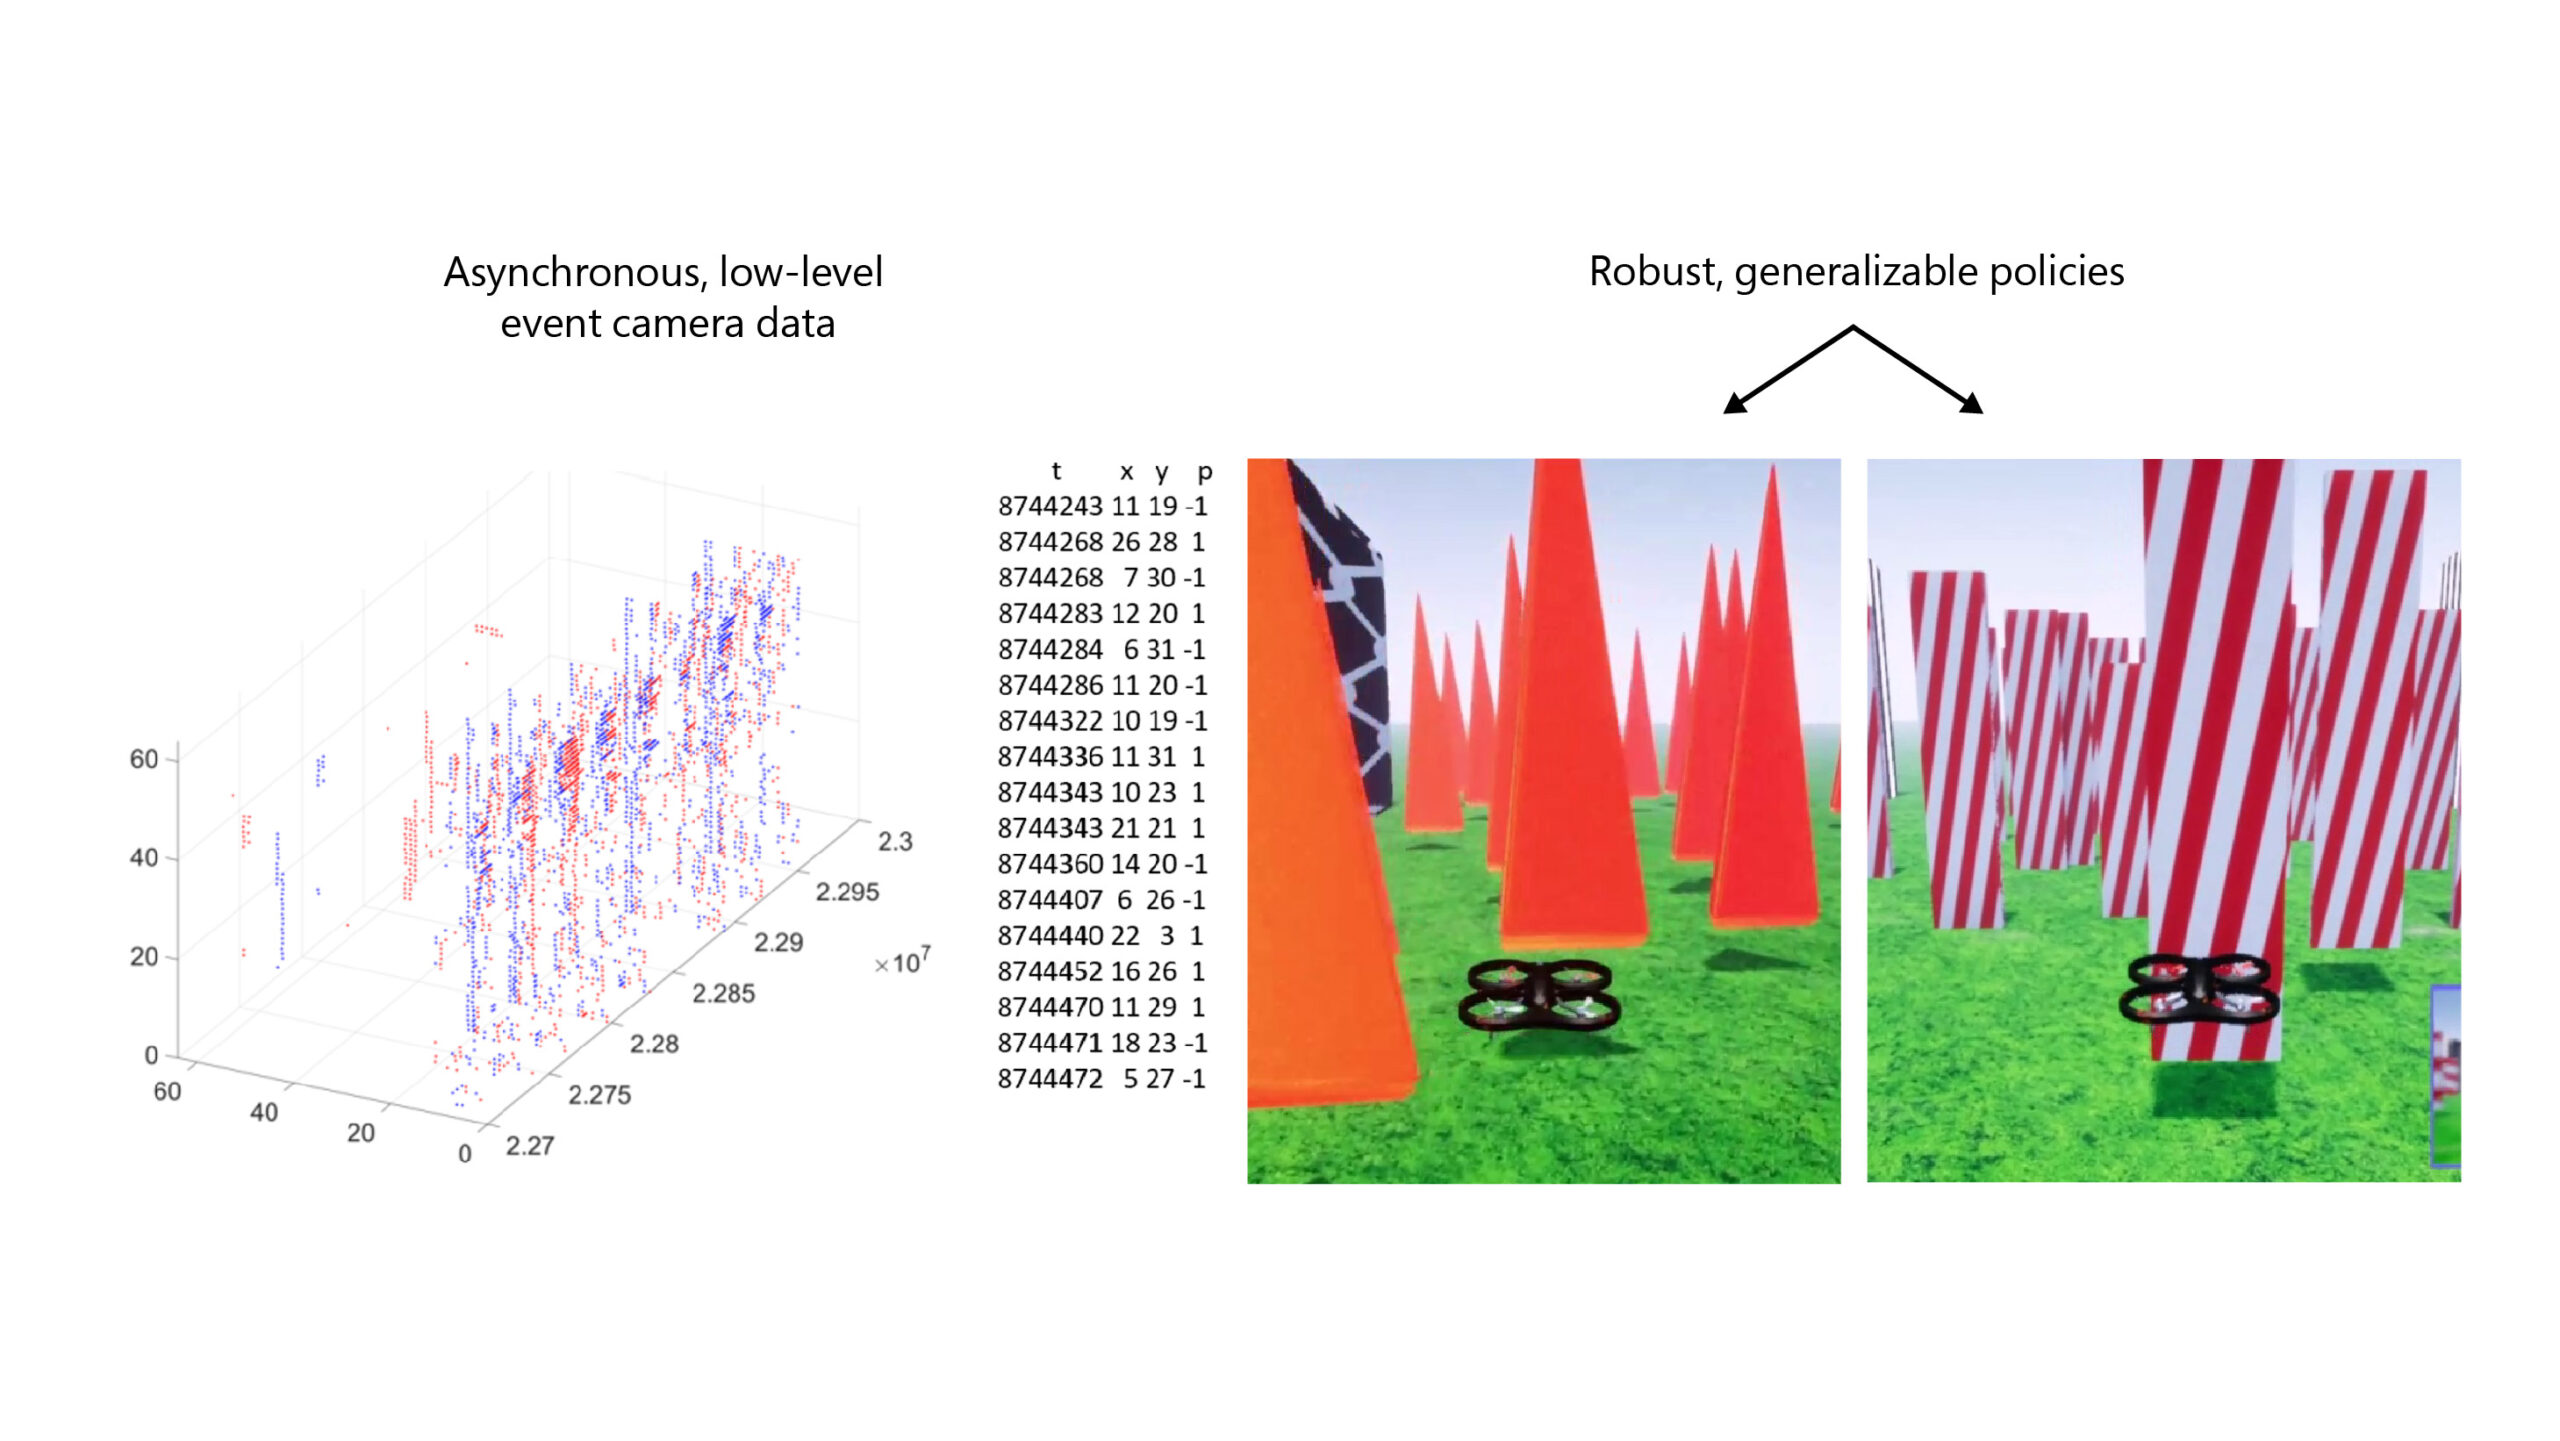 Learning visuomotor policies for autonomous systems from event-based cameras